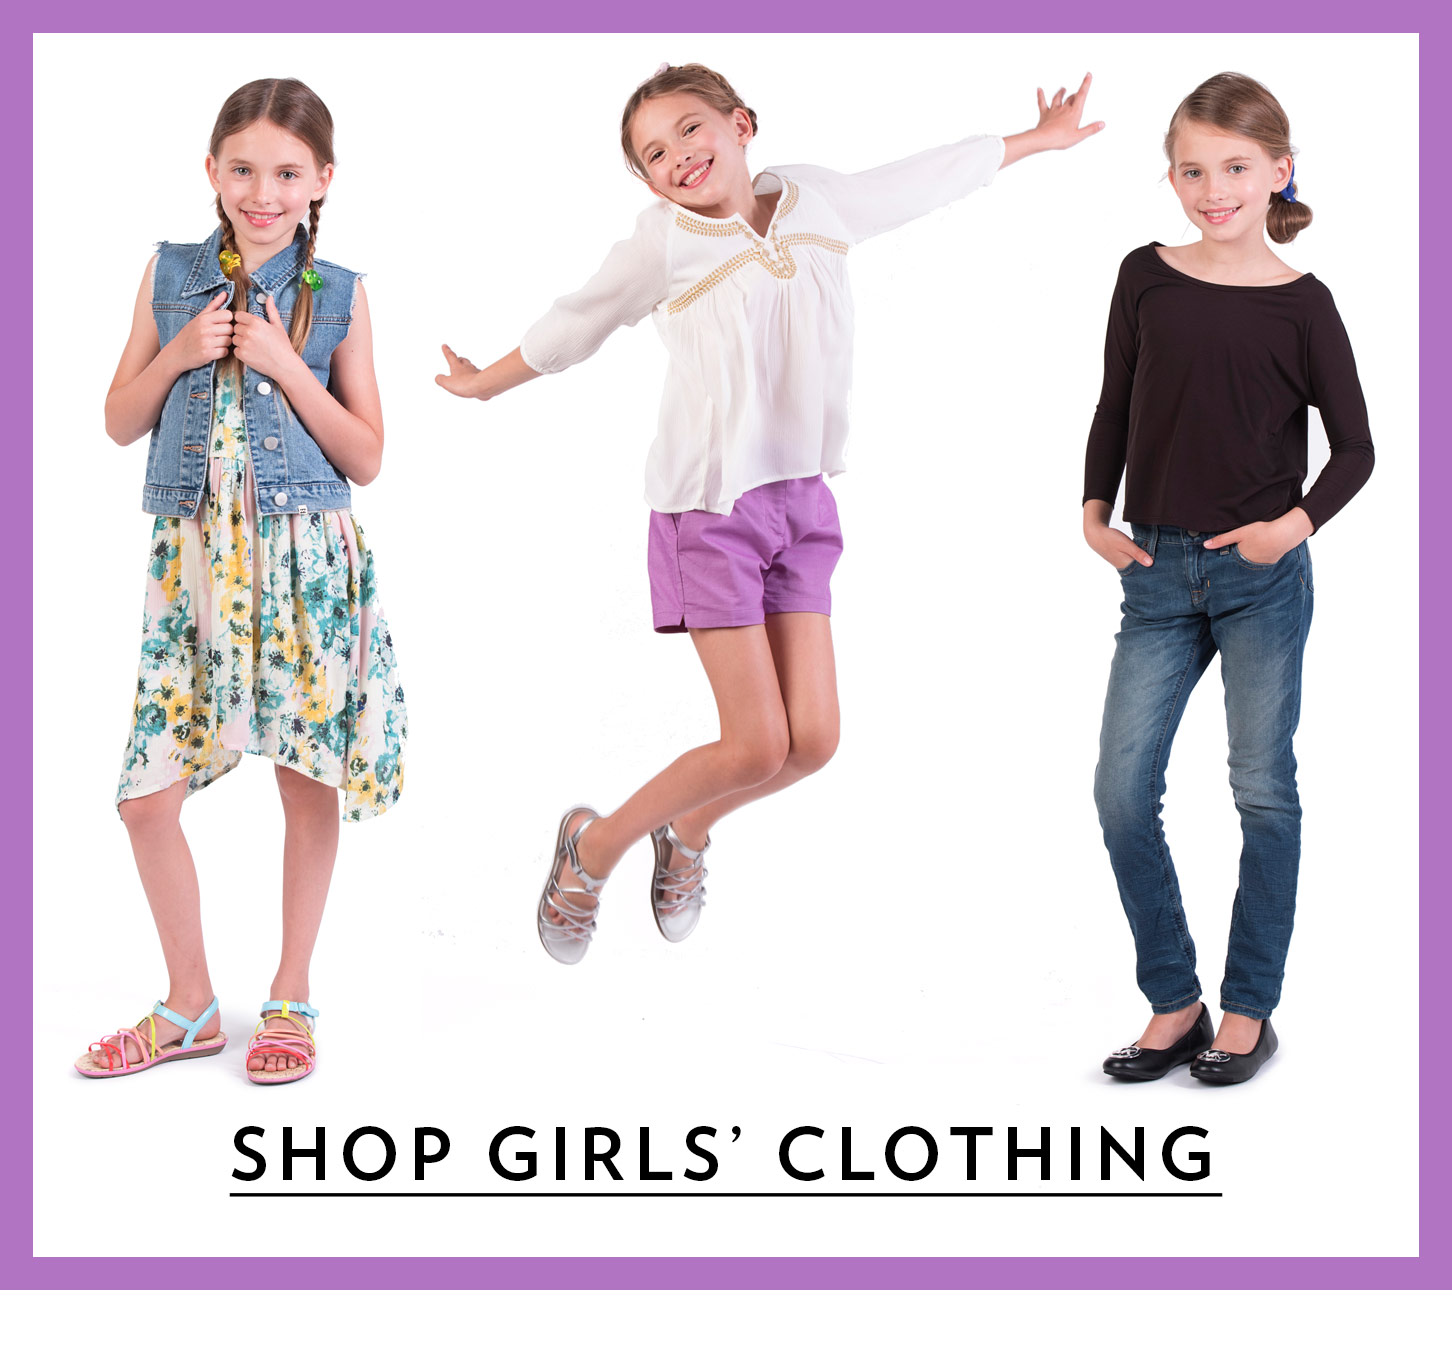 Discount Baby Clothes| Accessories & Clearance - JCPenney Loading.